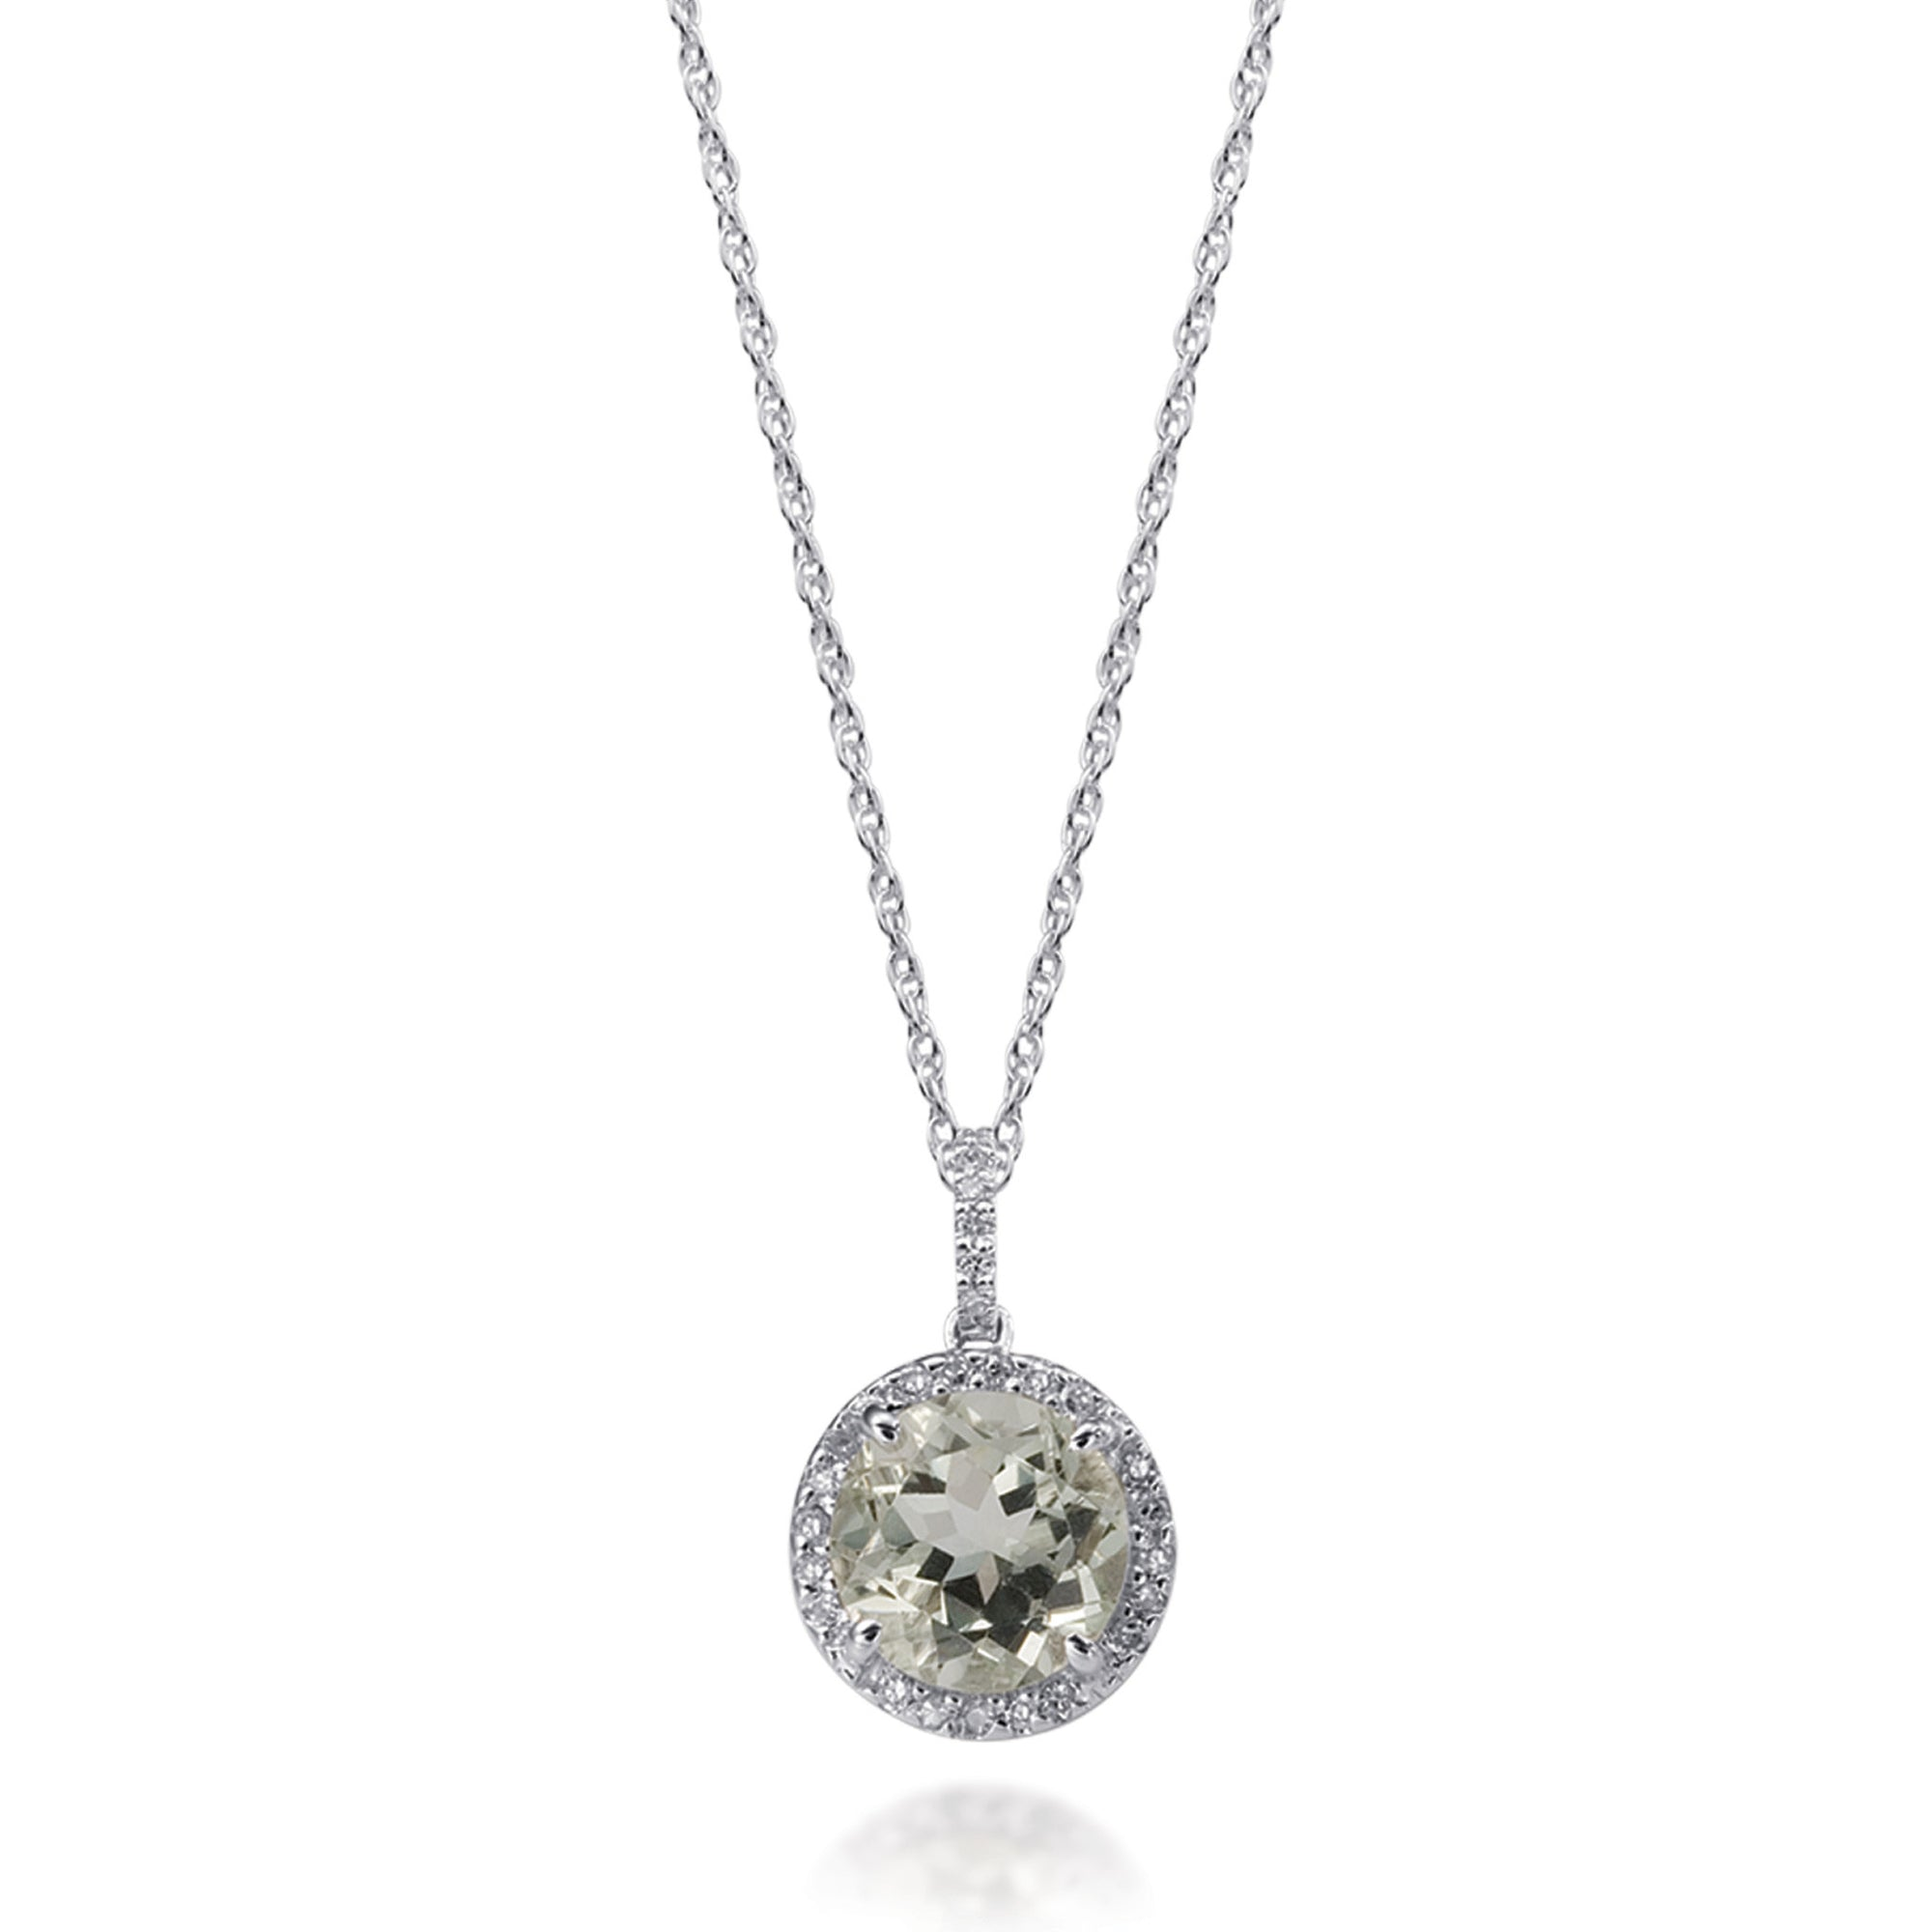 Bling Gemstone And Diamond Round Pendant Necklace In White Gold Desires By Mikolay